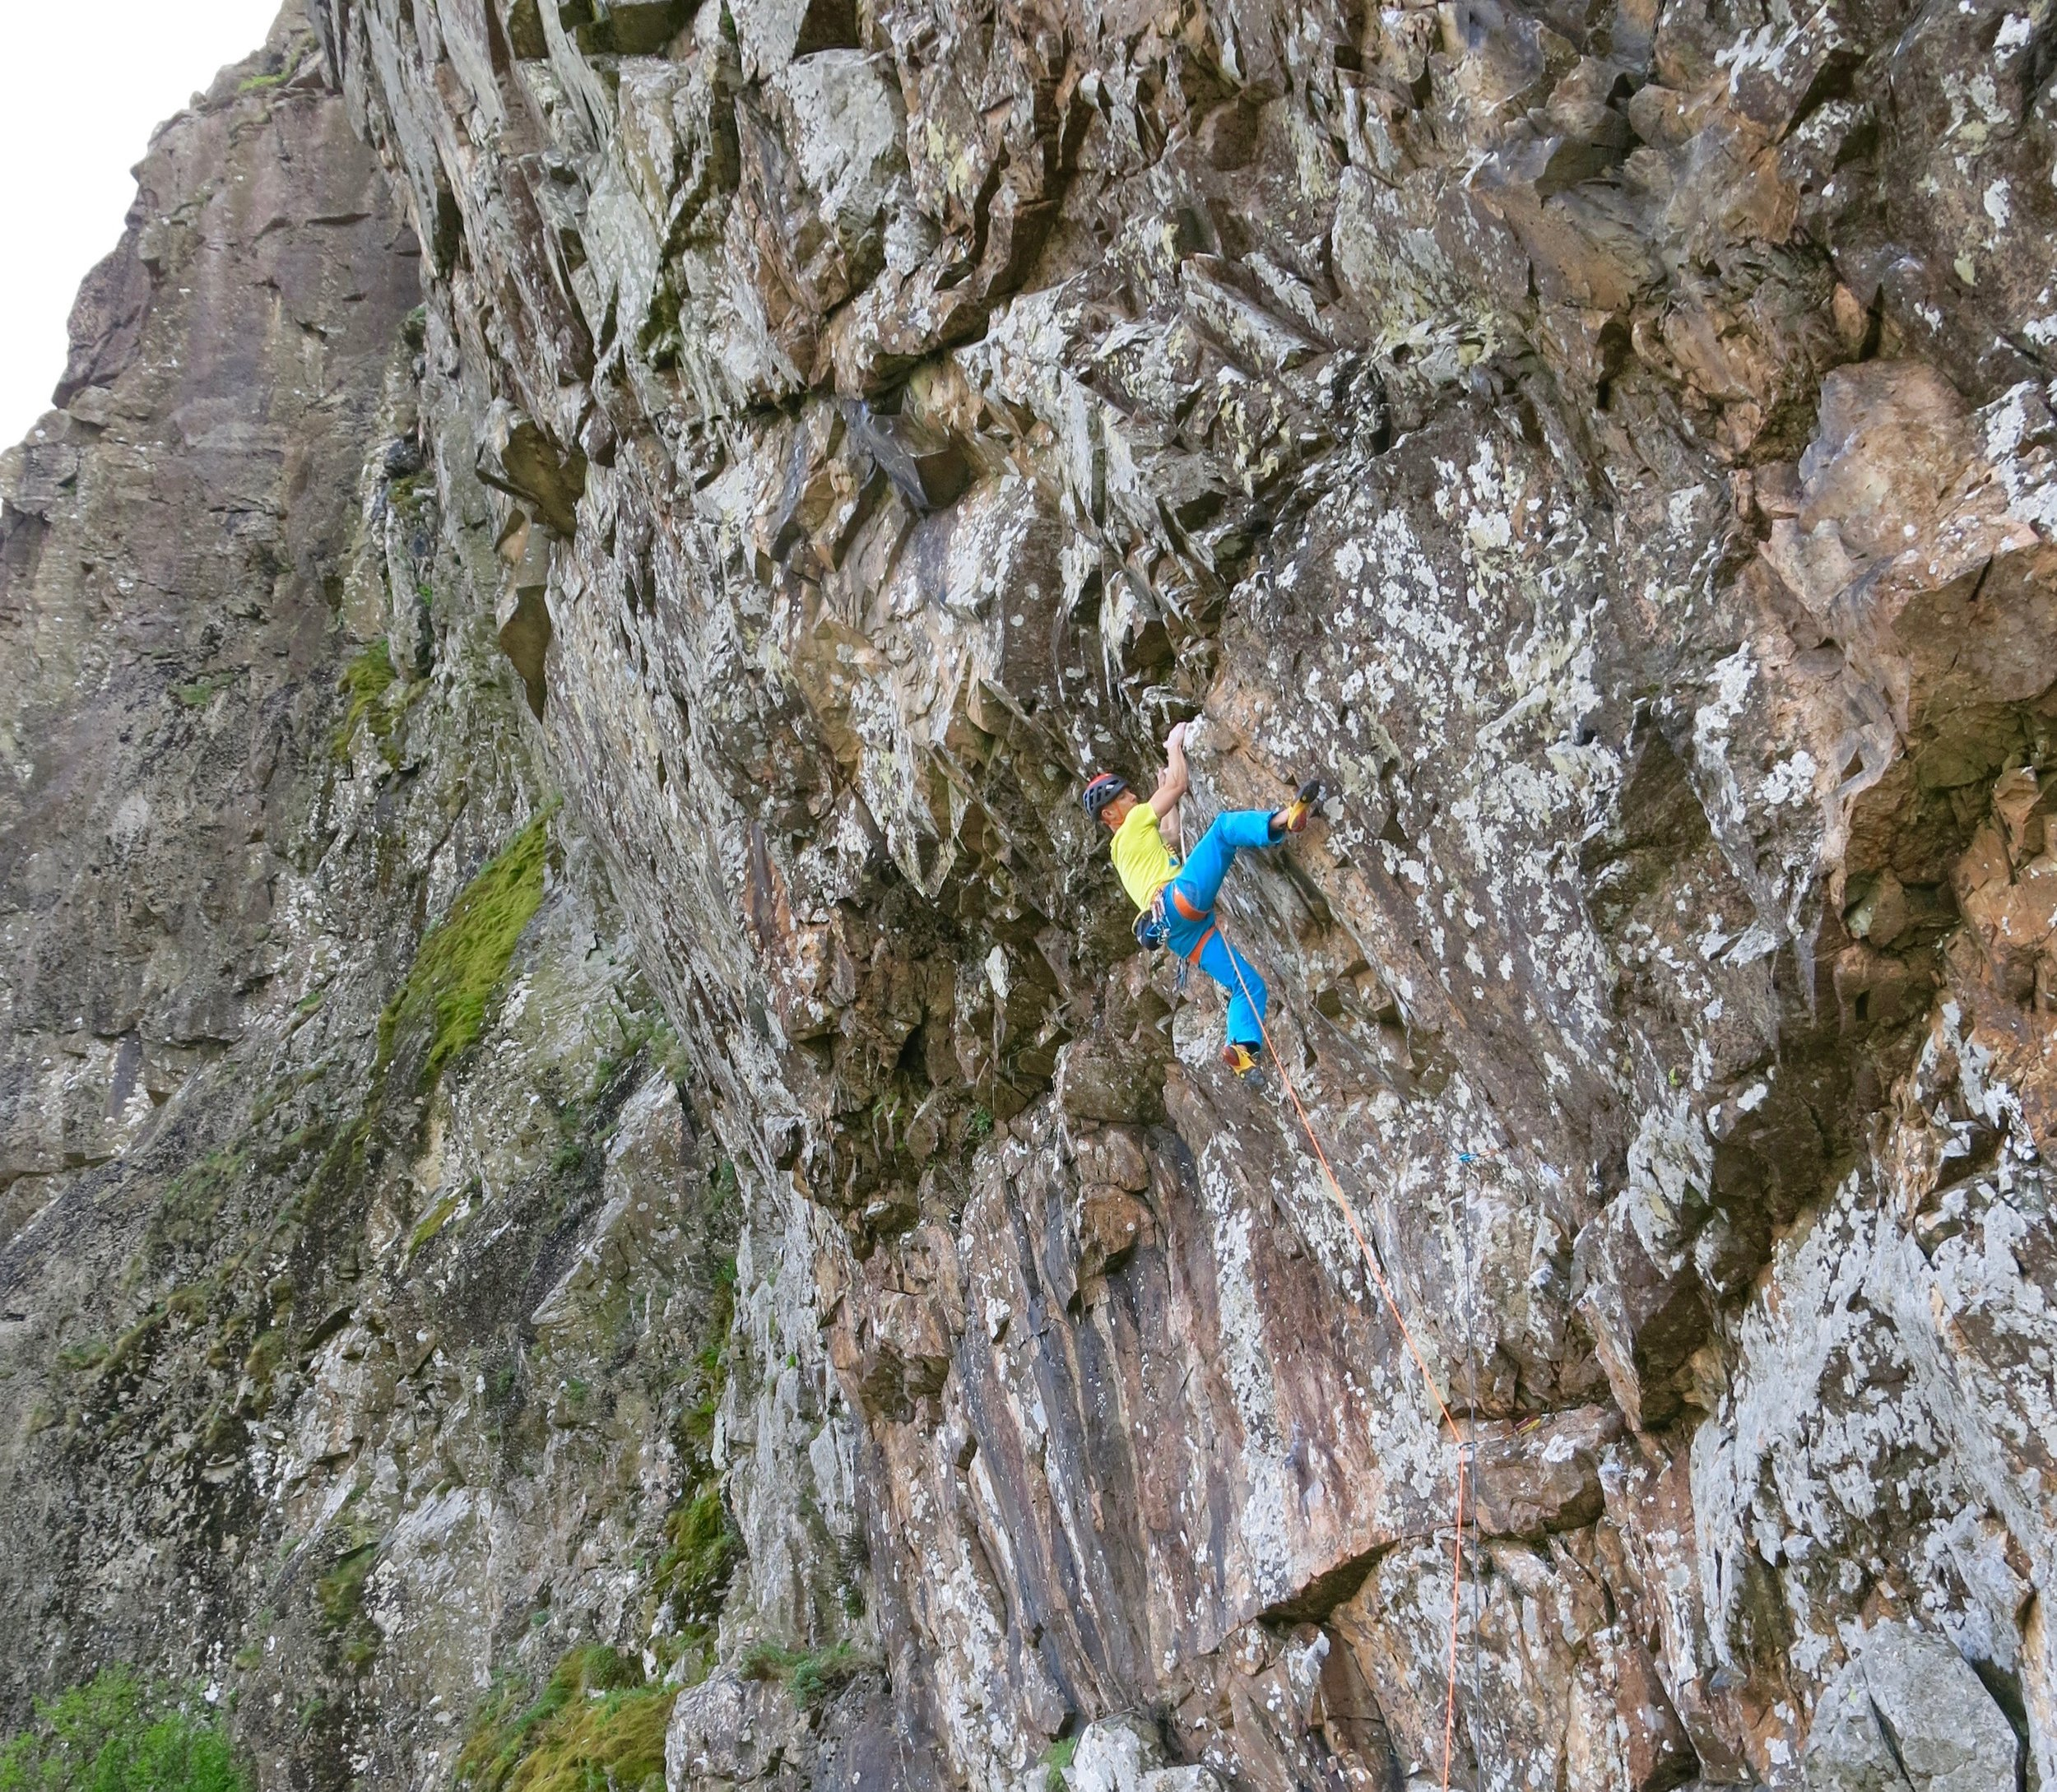 Fearless E9 6c, Dove Crag, Lake District. First ascent in June 2019.